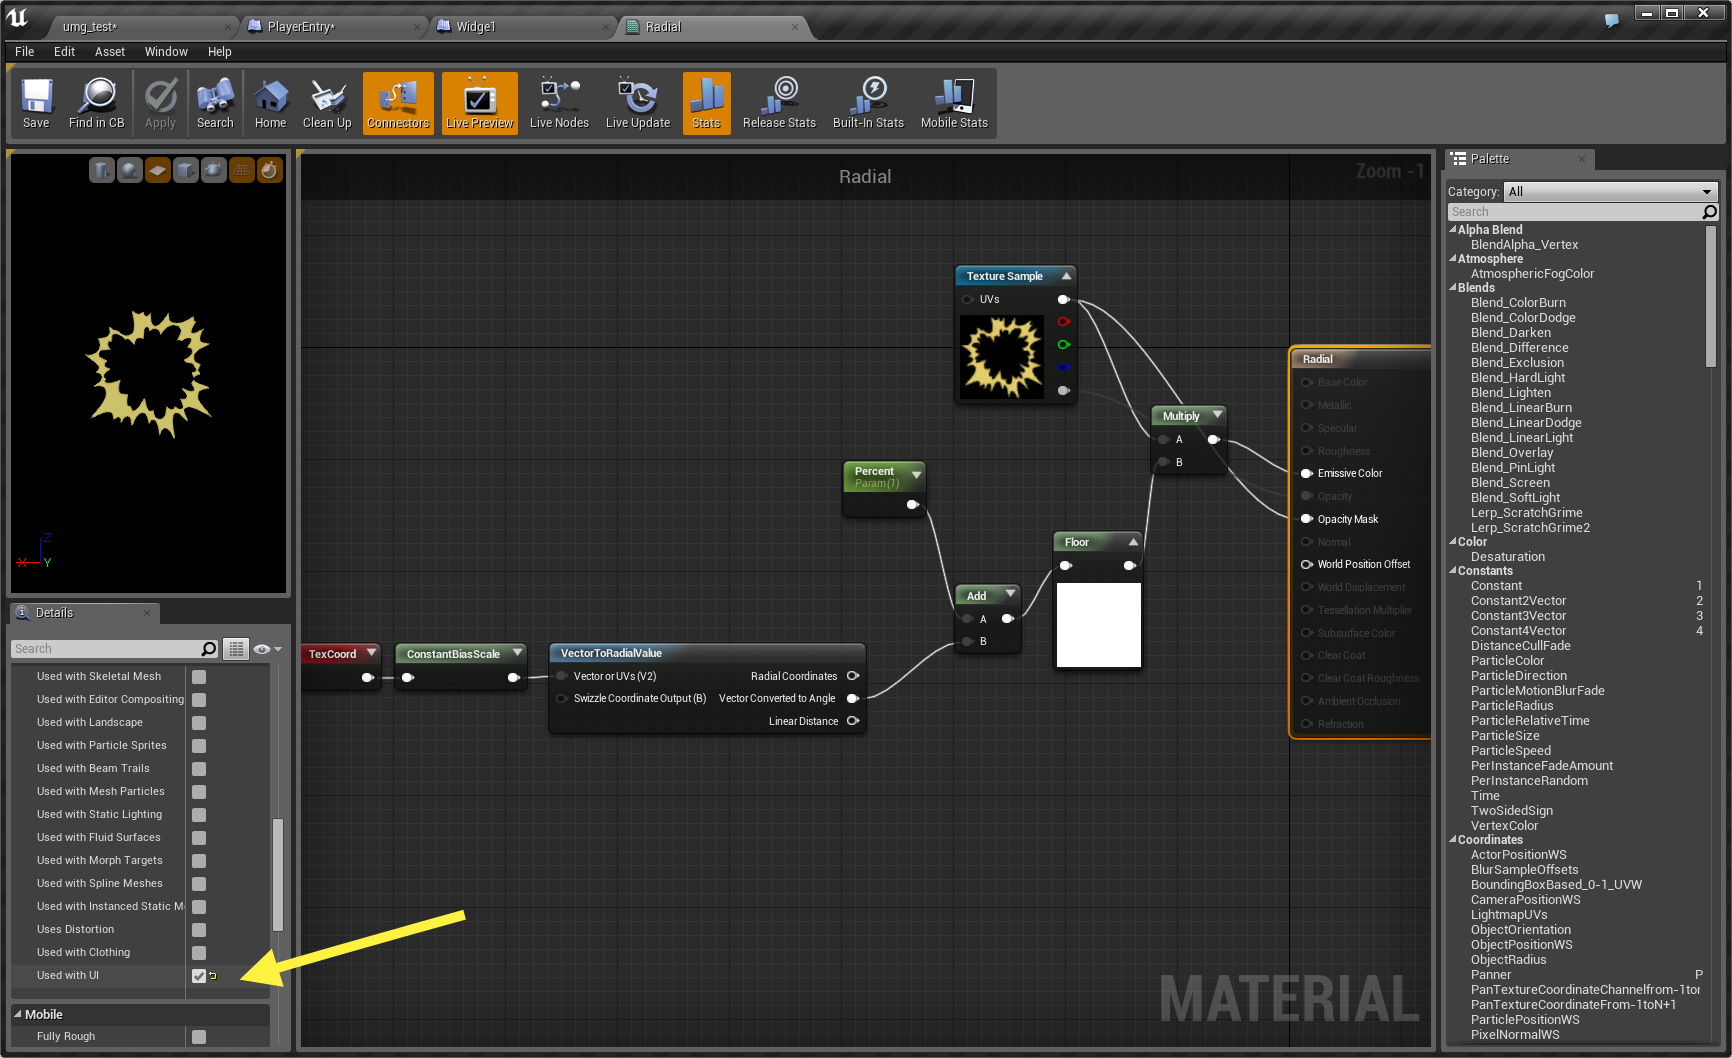 Styling unreal engine everything ui pinterest unreal engine styling unreal engine malvernweather Gallery